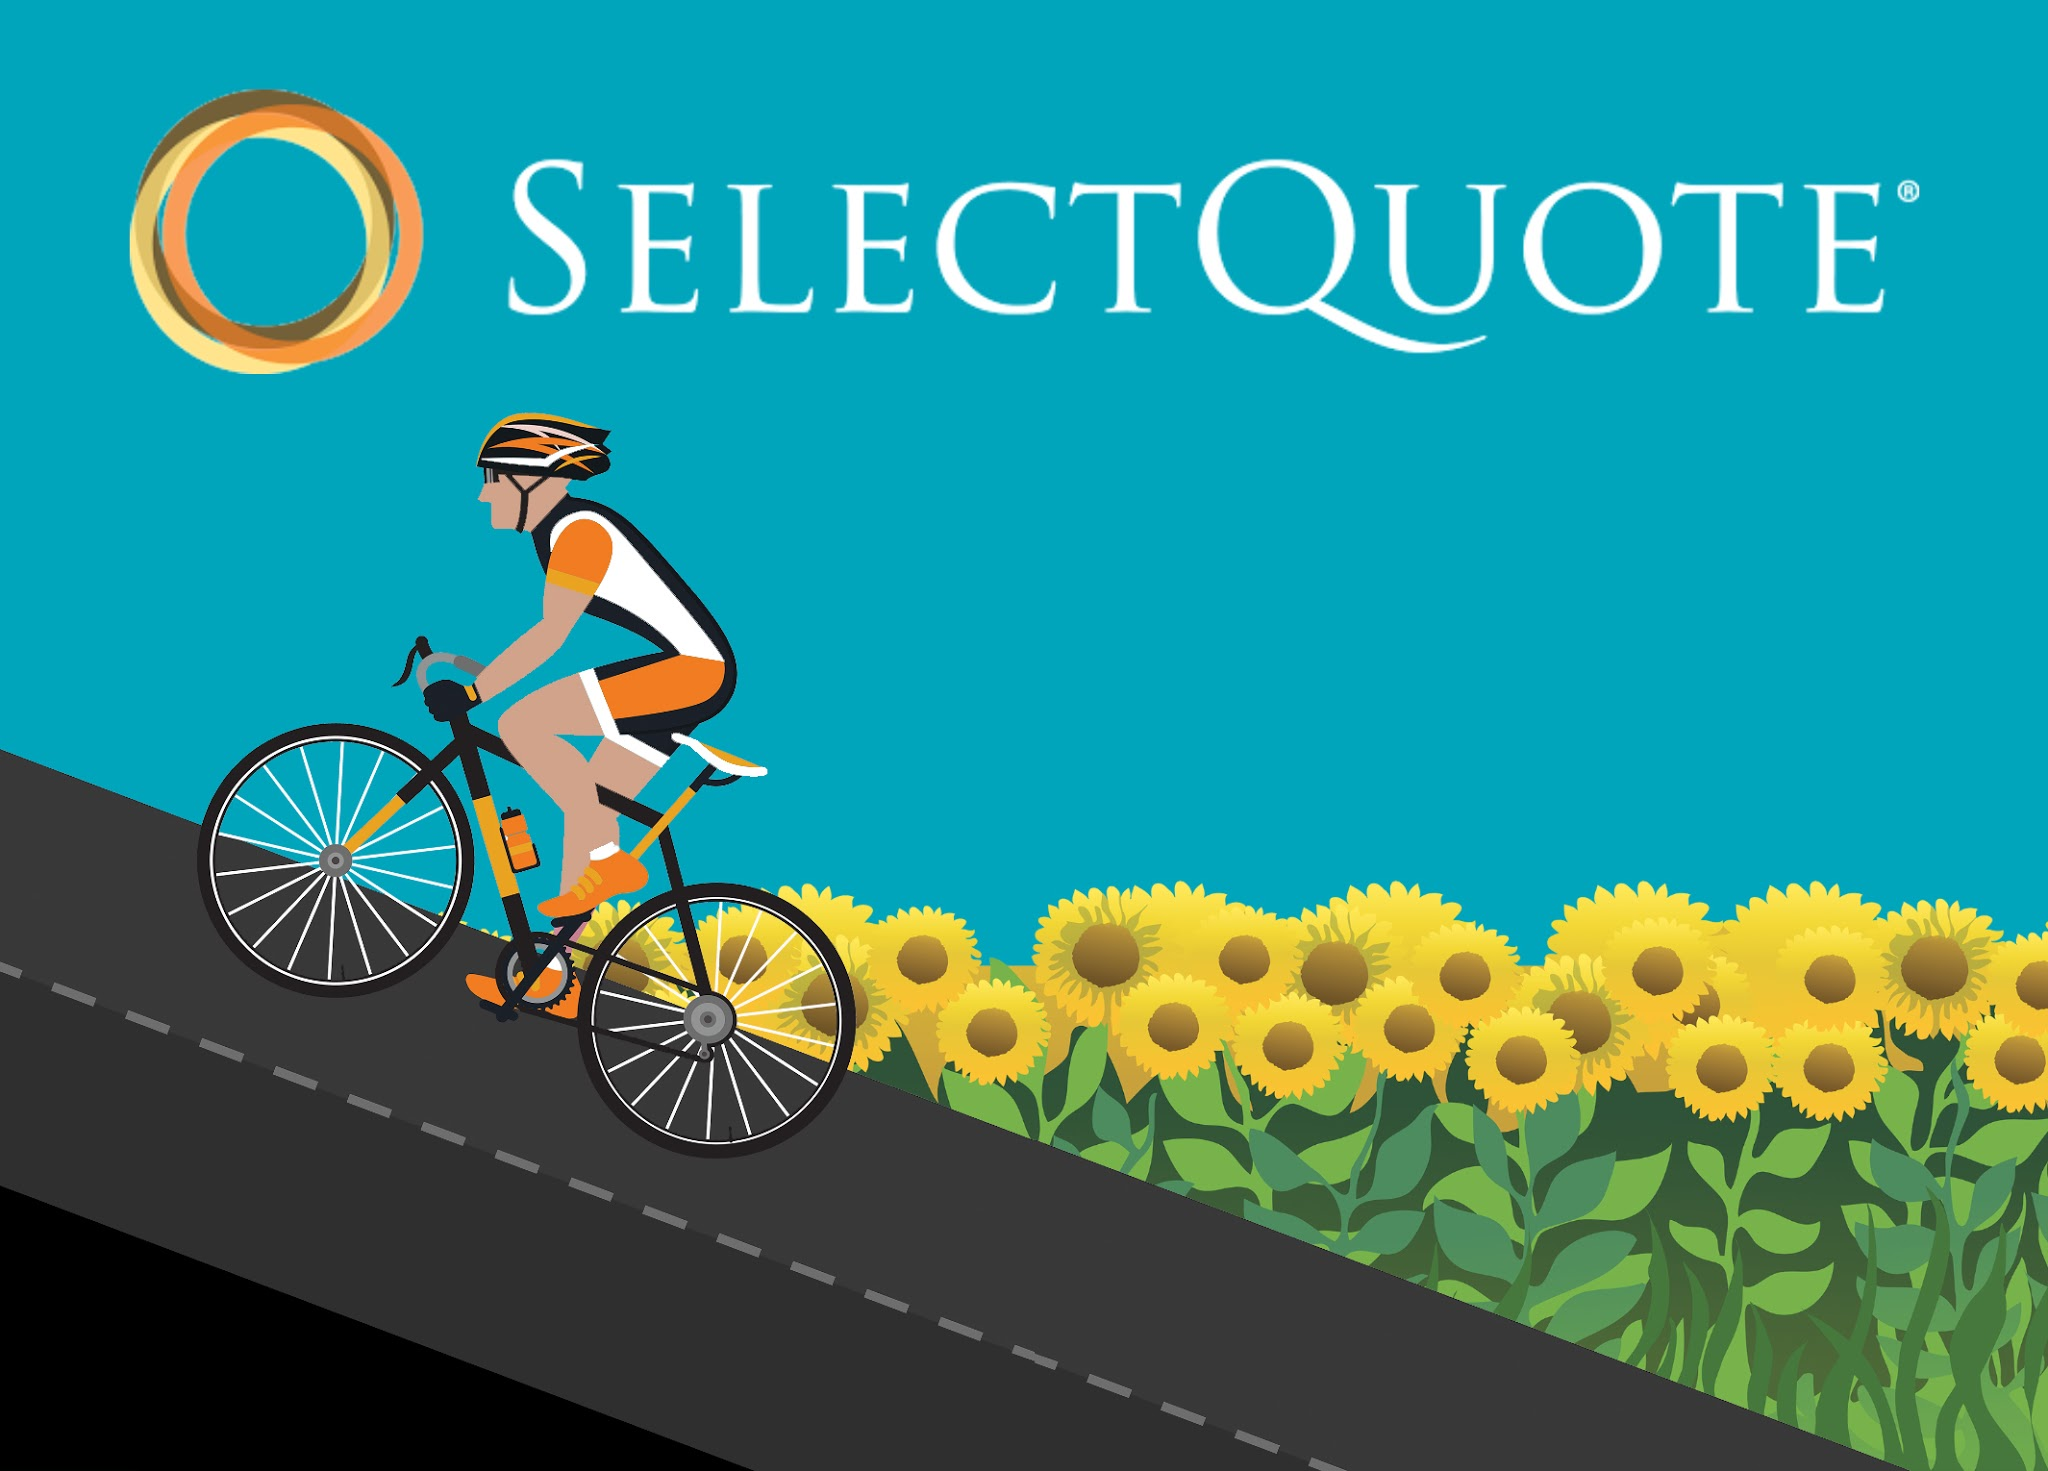 Select Quote Ride On Insurance  6 Bicycle Safety Tips  Selectquote Blog